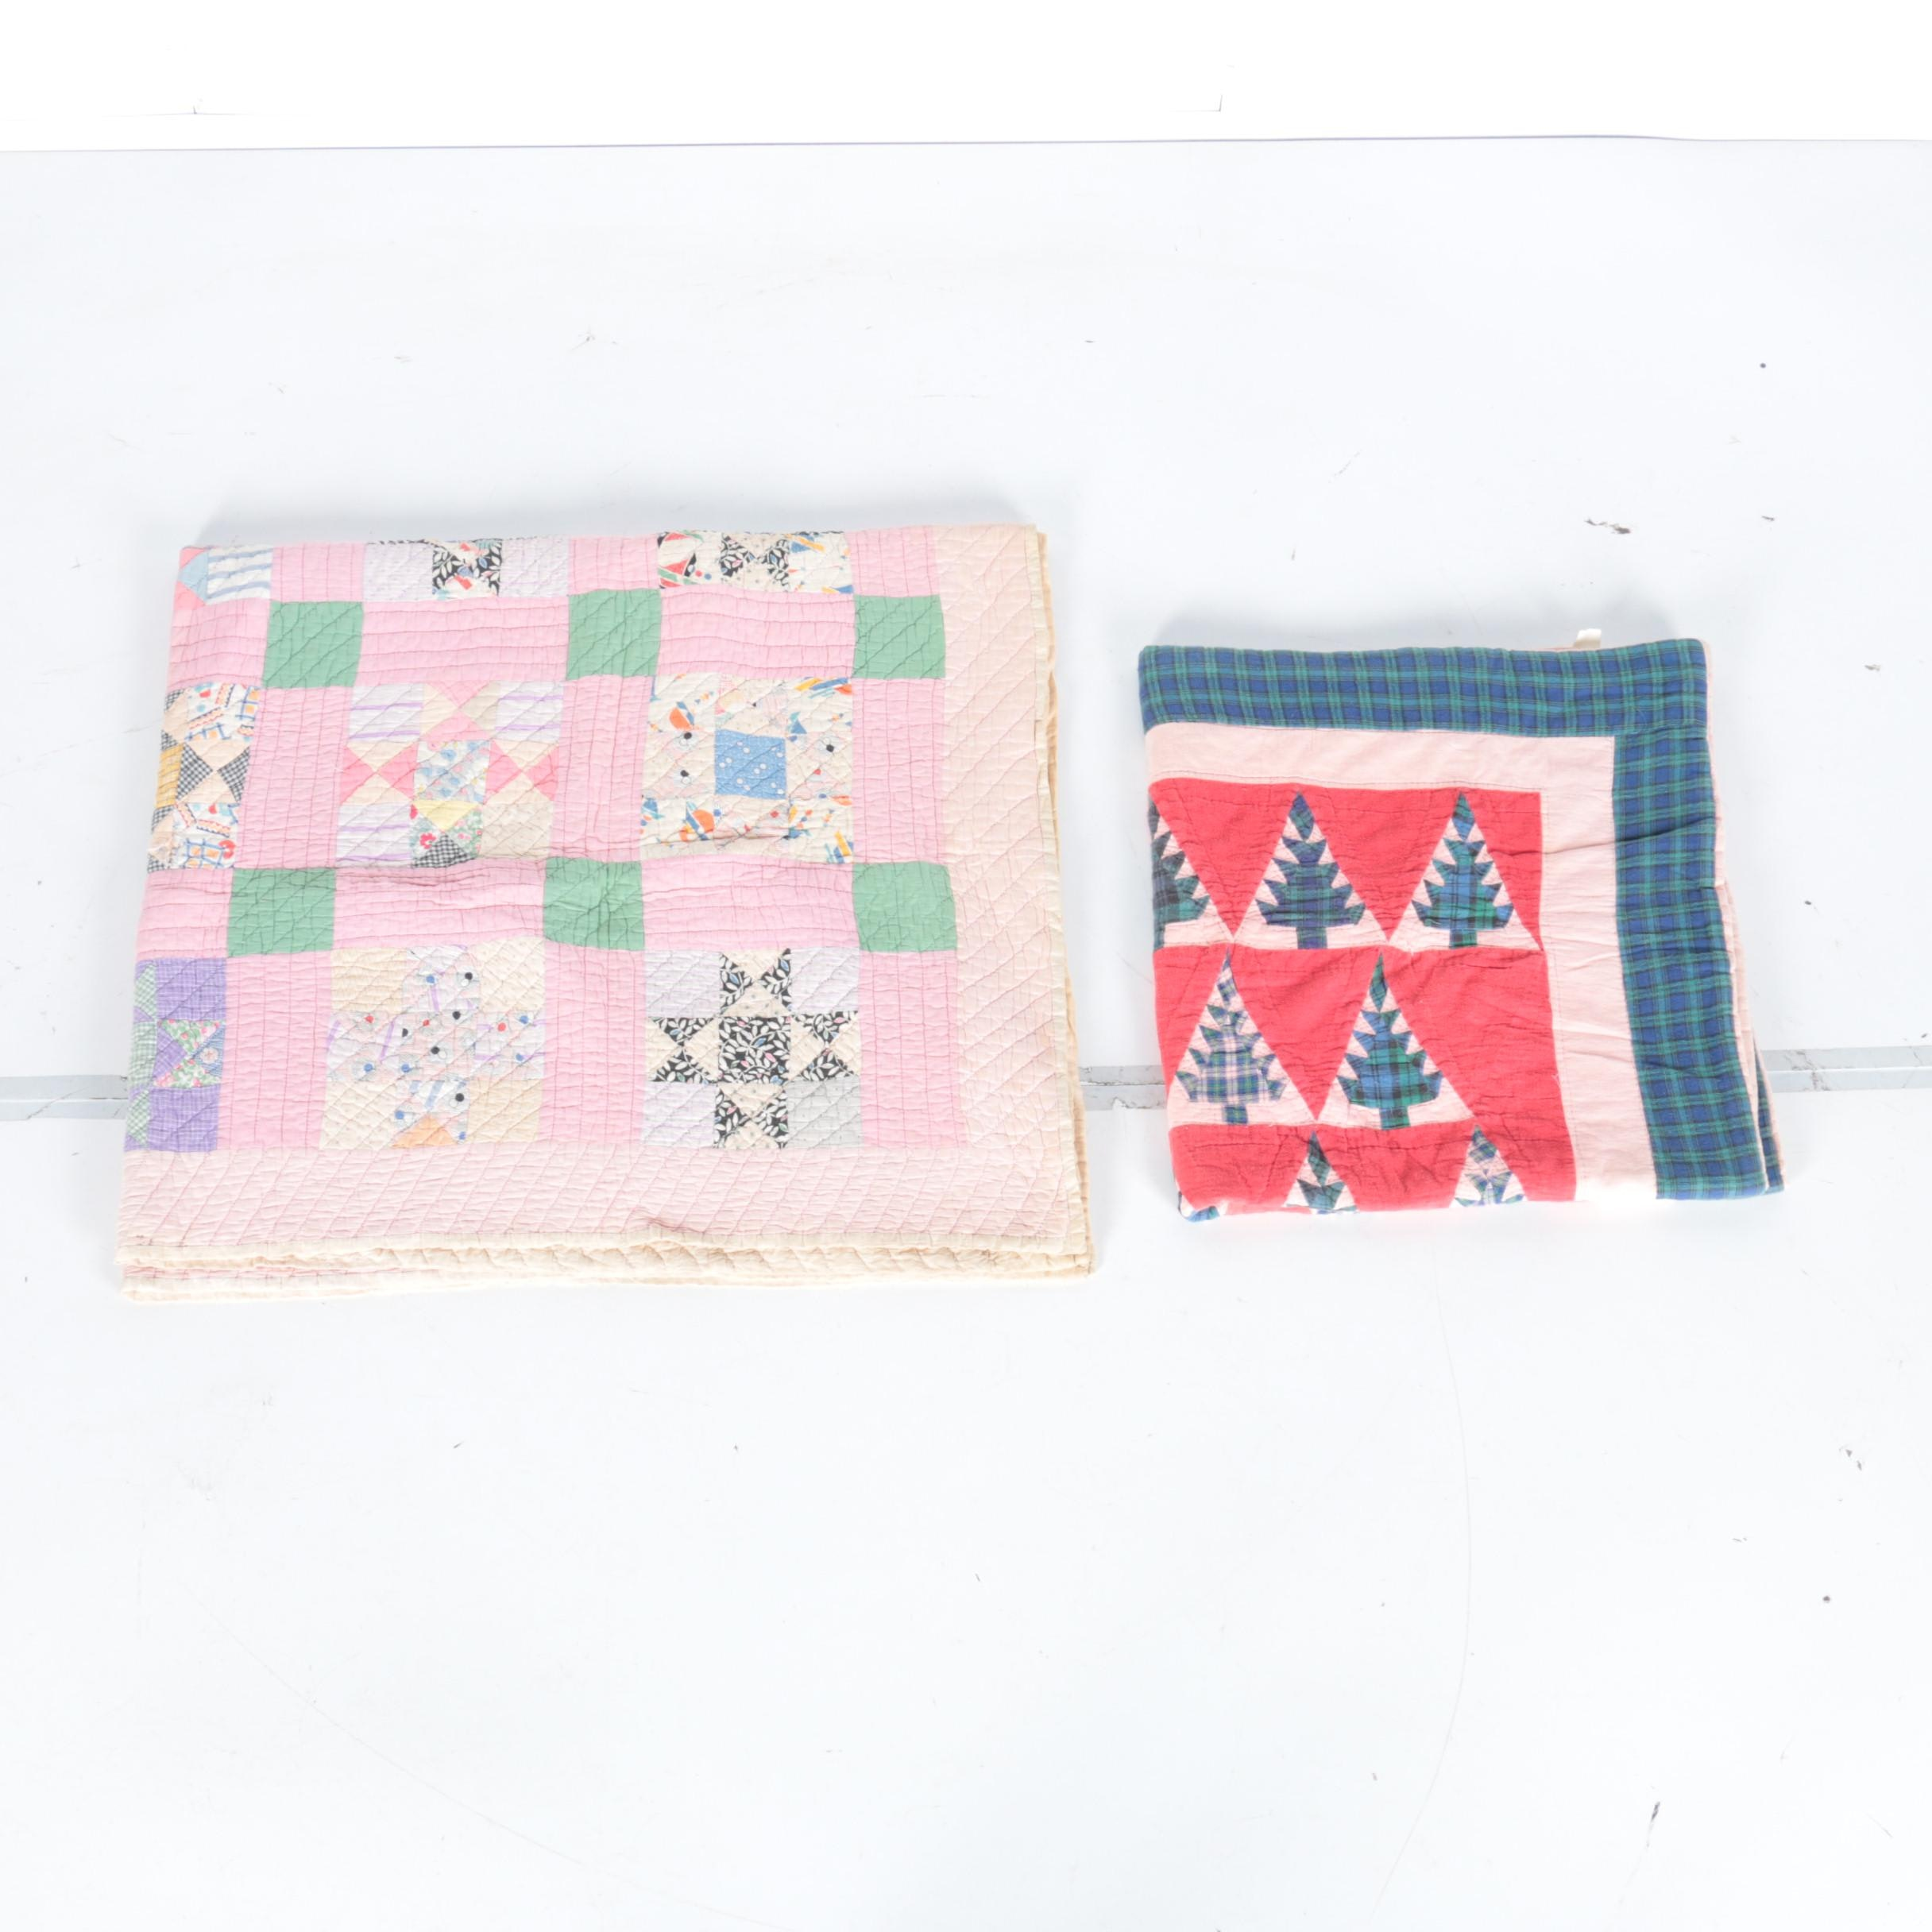 Pair of Vintage Patchwork Quilts